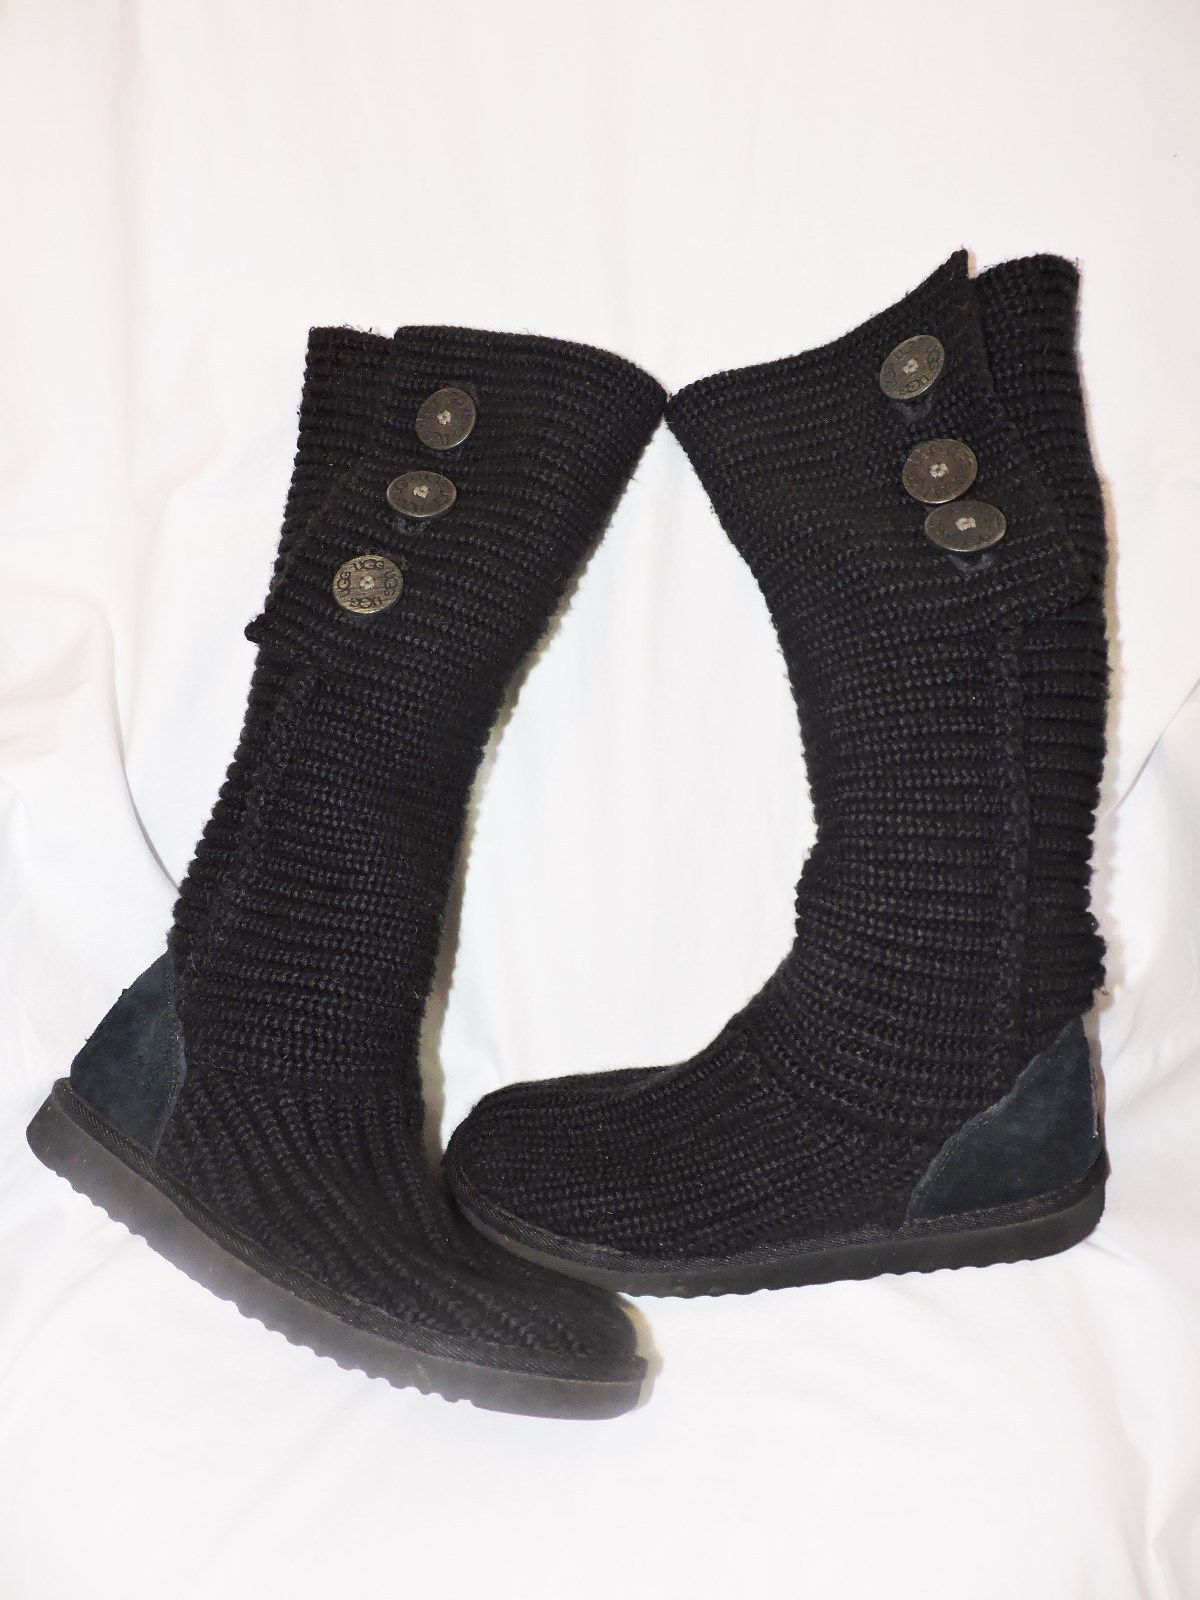 a98351e048c Black Knit Cardy Ugg Boots - cheap watches mgc-gas.com